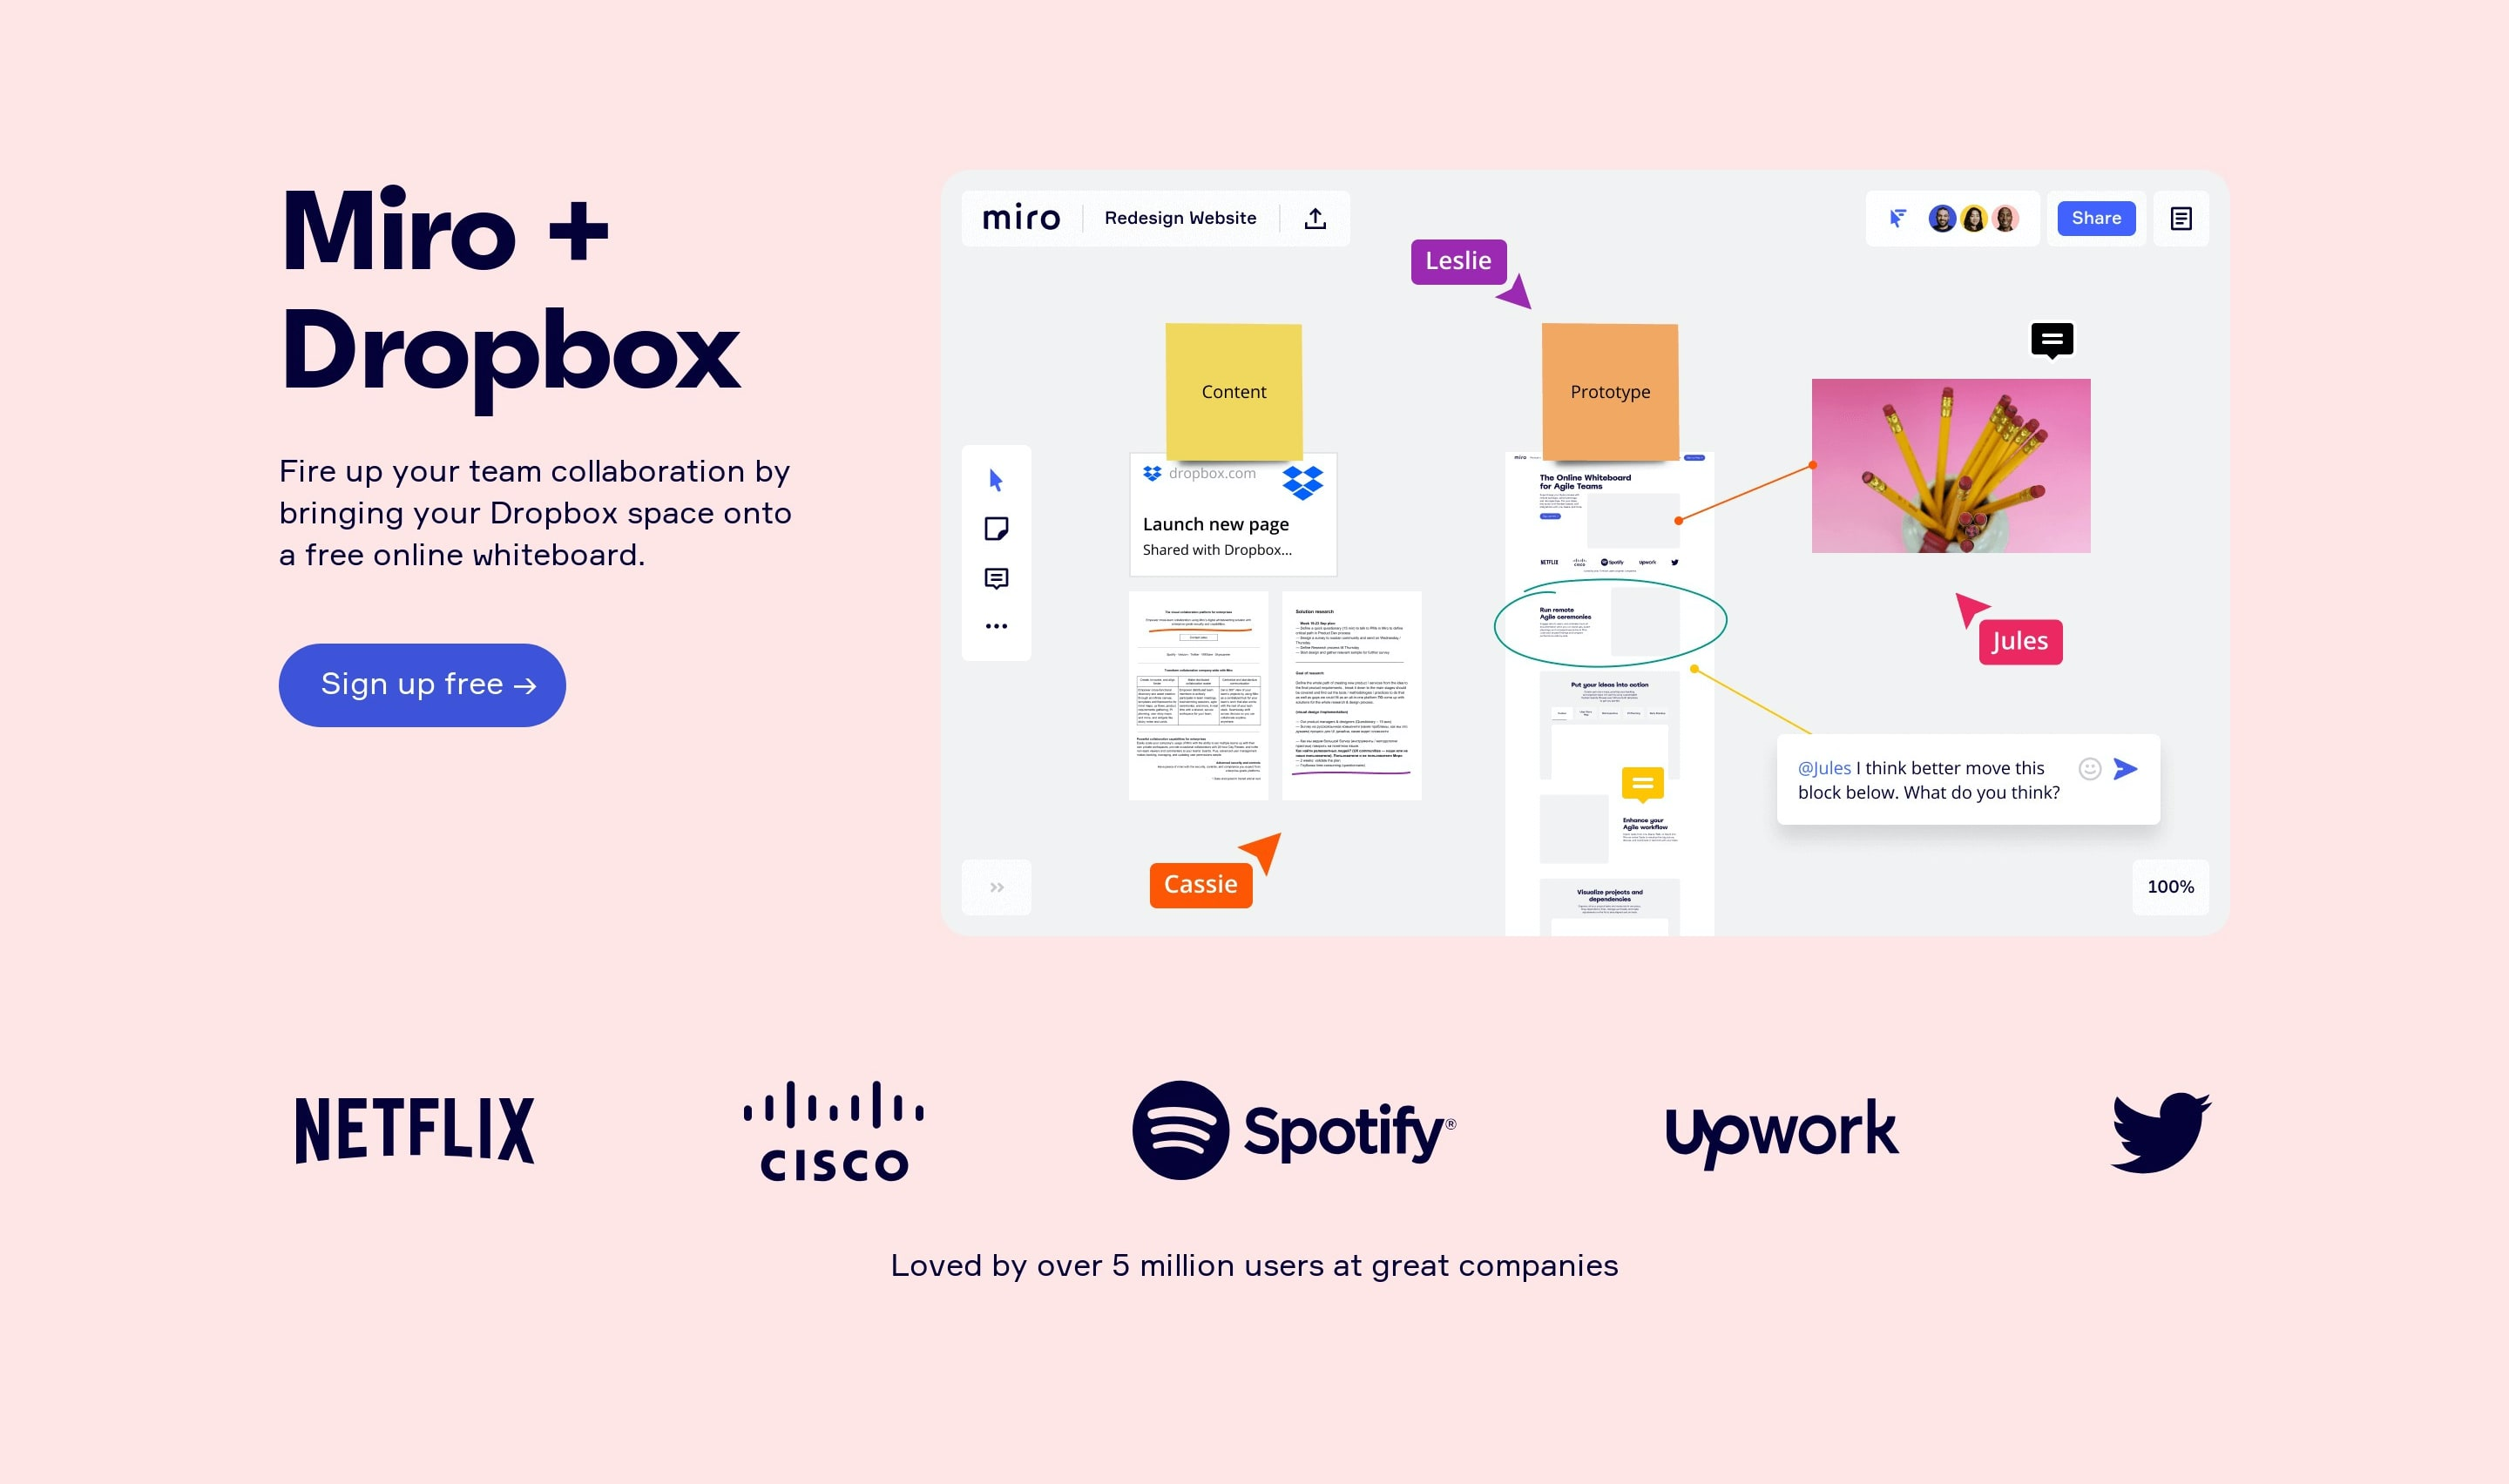 Hero Block with Web App Mockup & Logos